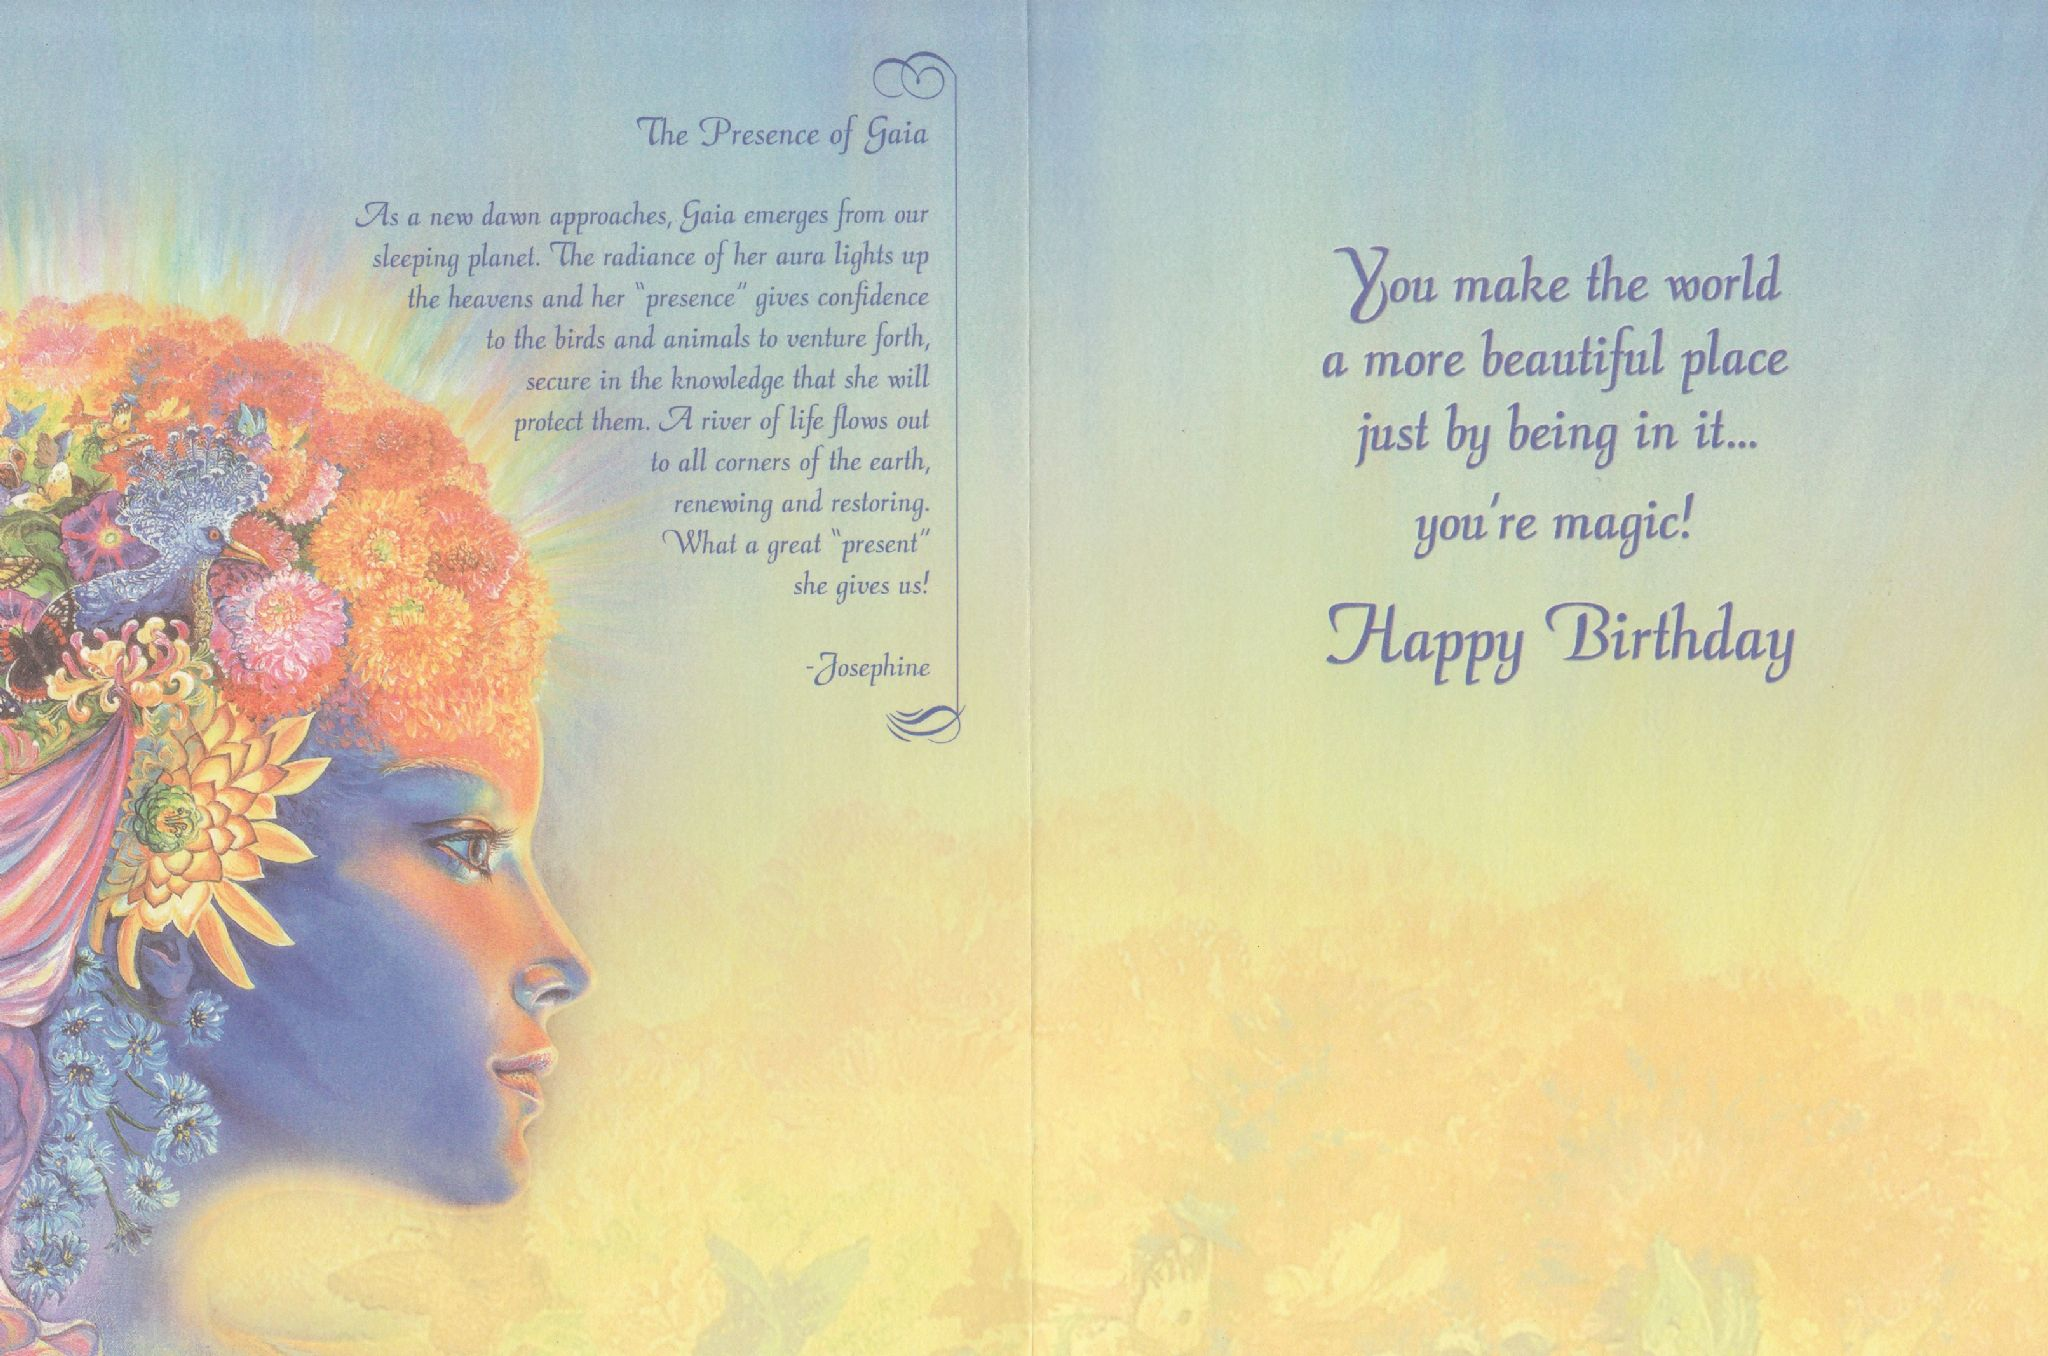 Birthday Card The Presence of Gaia Birthday Greetings Card by ...